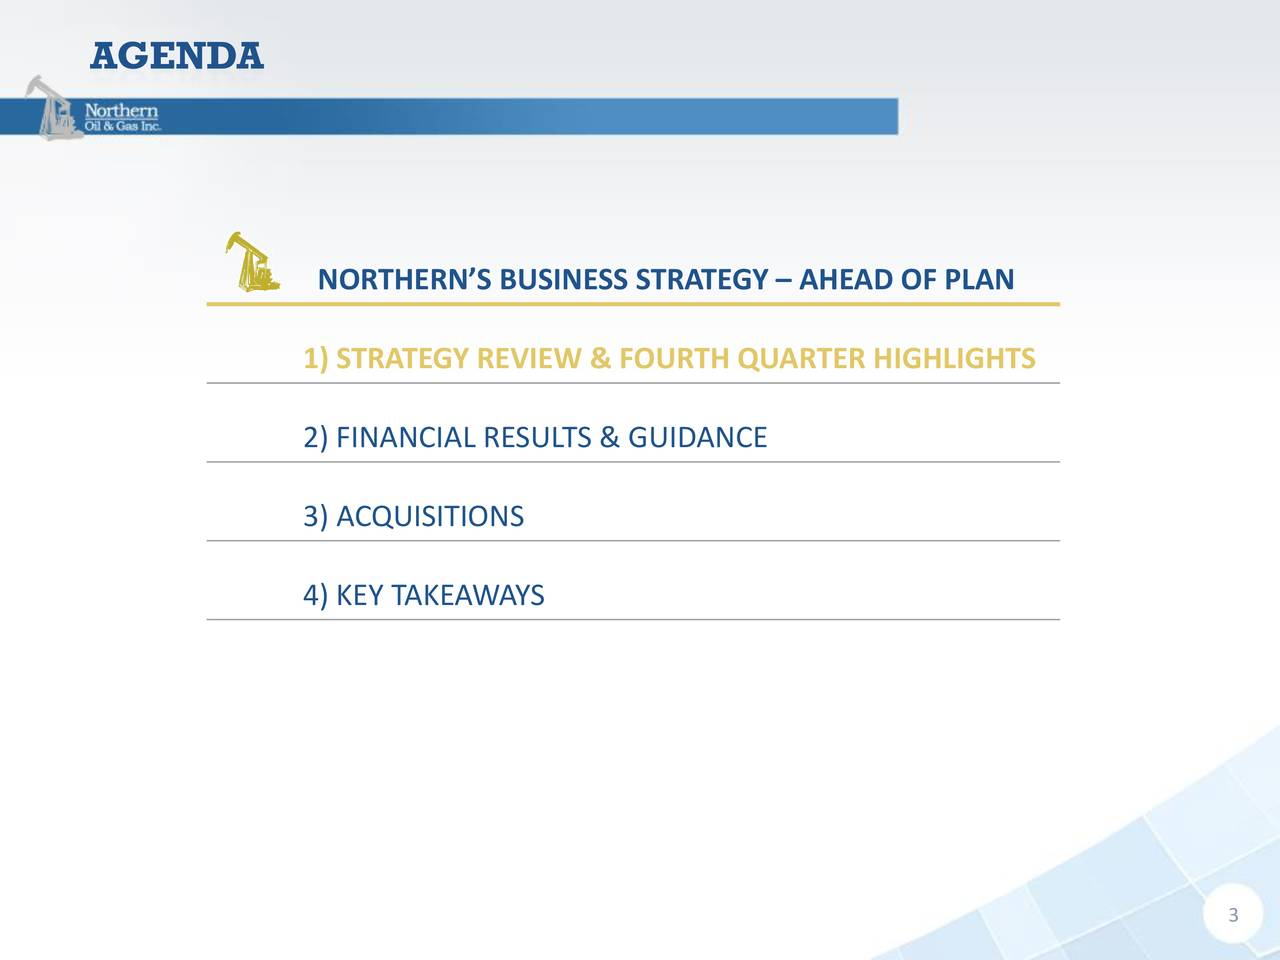 NORTHERN'S BUSINESS STRATEGY – AHEAD OF PLAN